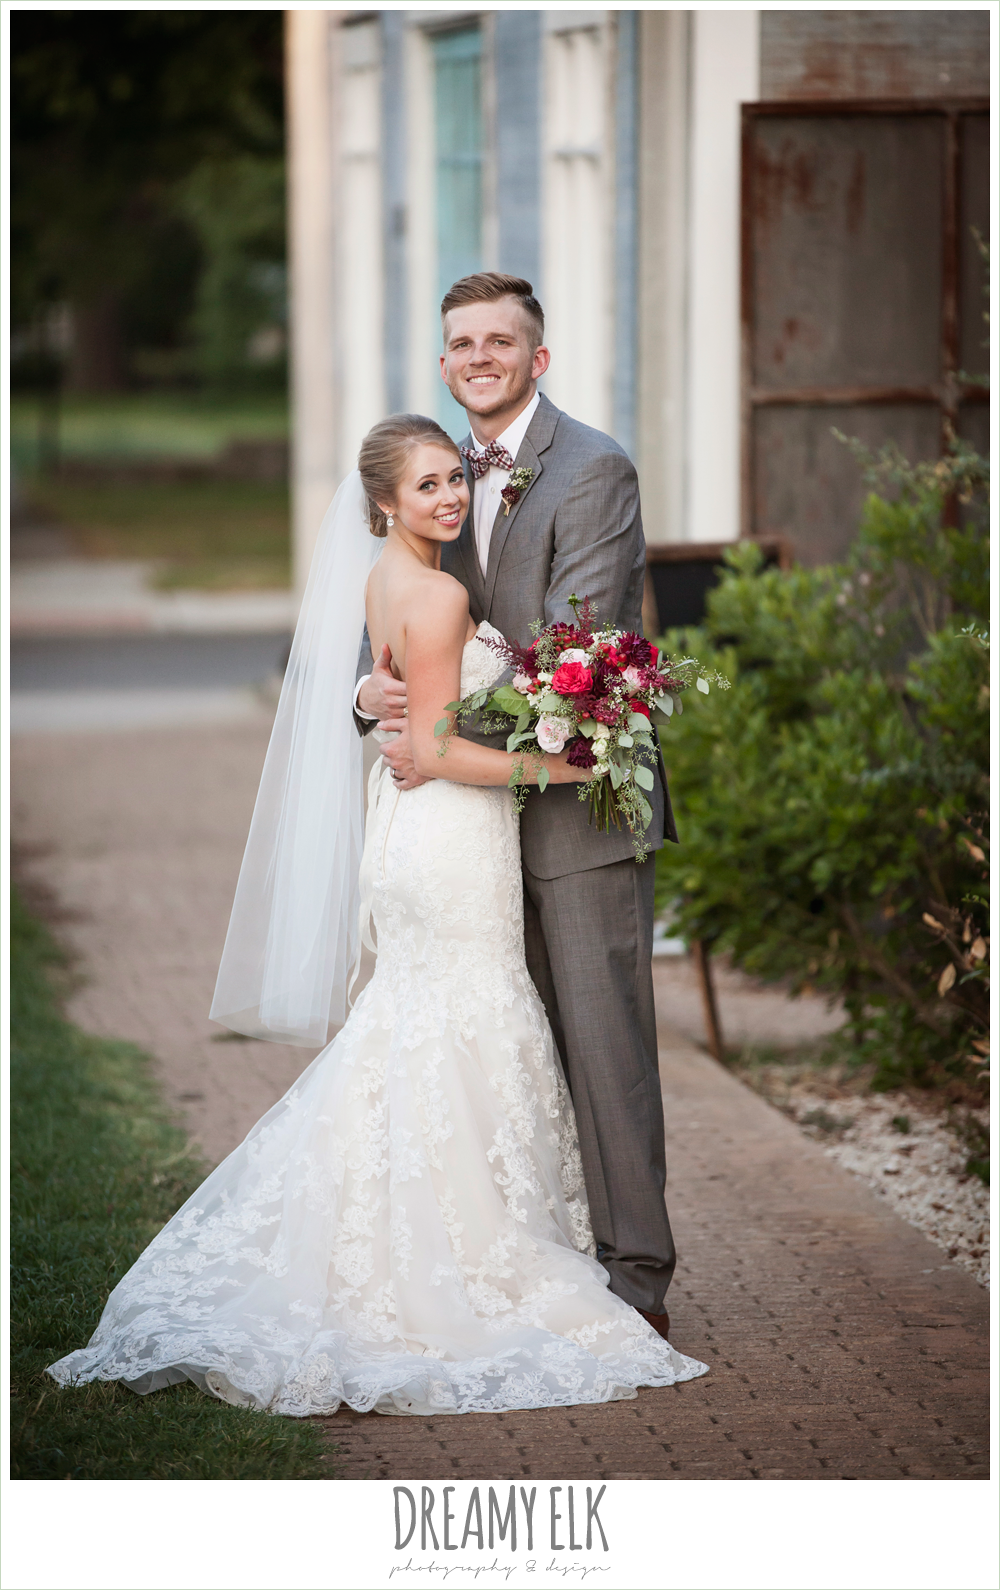 bride and groom portraits, flourish floral design, burgundy and light pink wedding bouquets, the union on 8th wedding photo {dreamy elk photography and design}